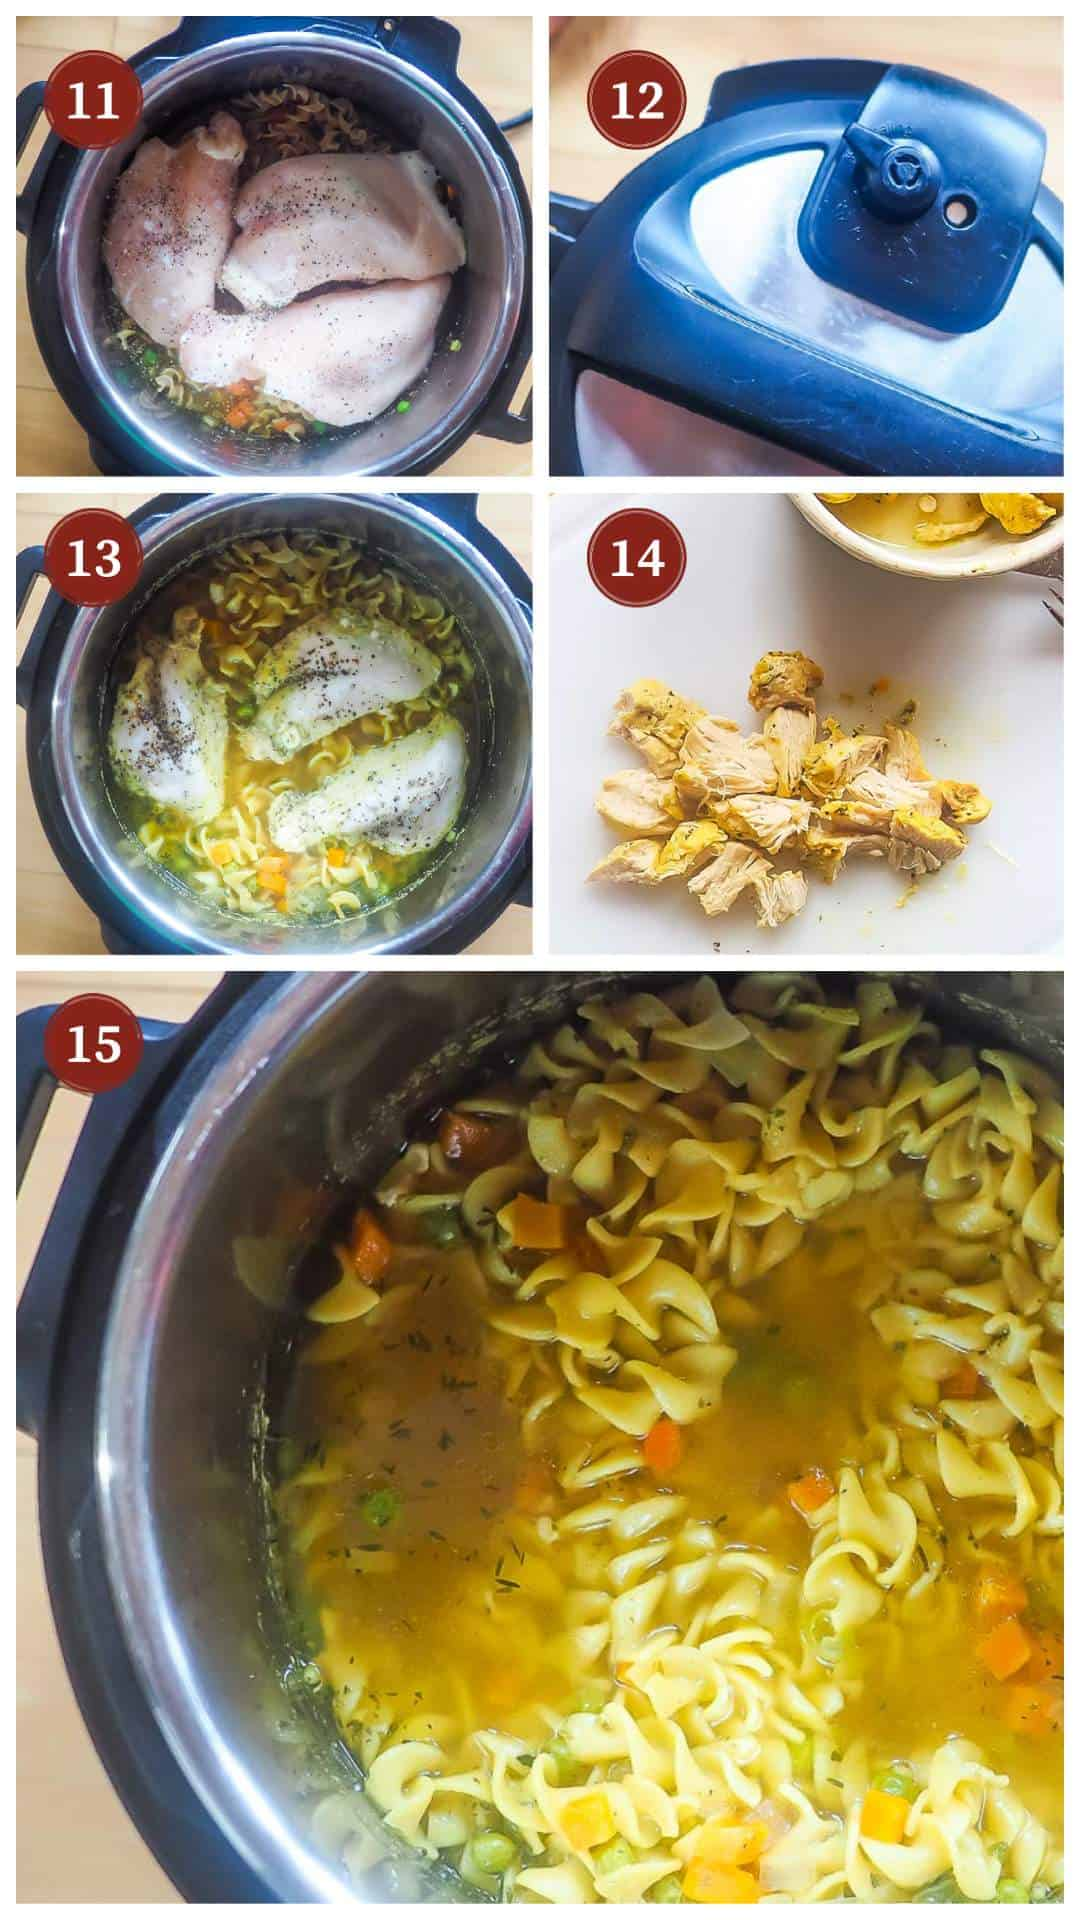 A collage of images showing the process of making instant pot chicken pot pie soup, steps 11 - 15.